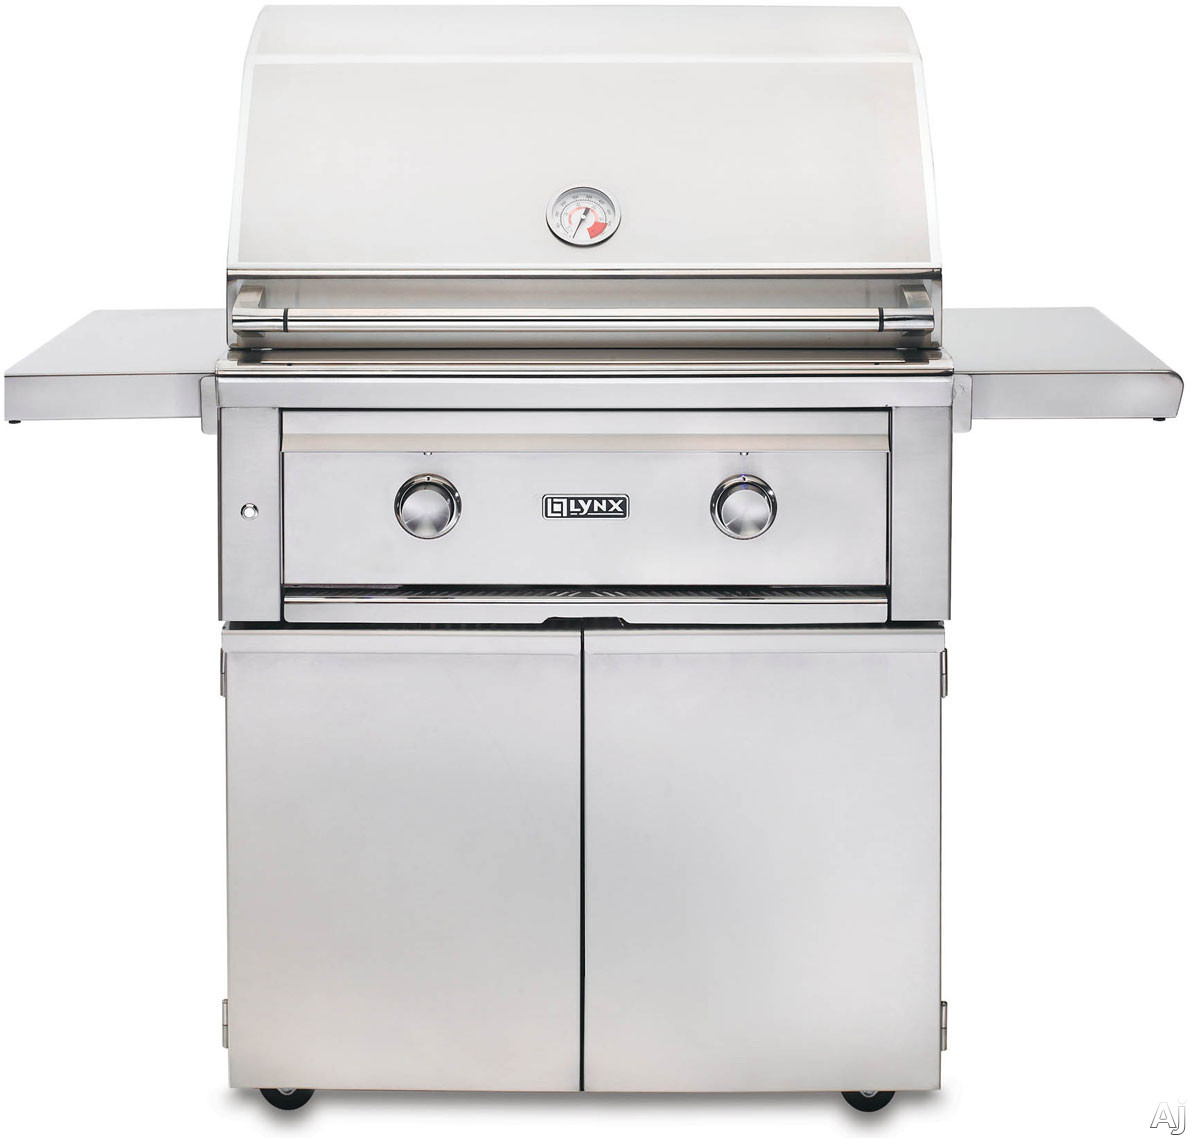 Lynx Sedona Series L500PSLP 30 Inch Built-in Gas Grill with 733 sq. in. Cooking Surface, 46,000 Total BTUs, Stainless Steel Tube Burner, ProSear Burner, Halogen Surface Light and Temperature Gauge: Liquid Propane